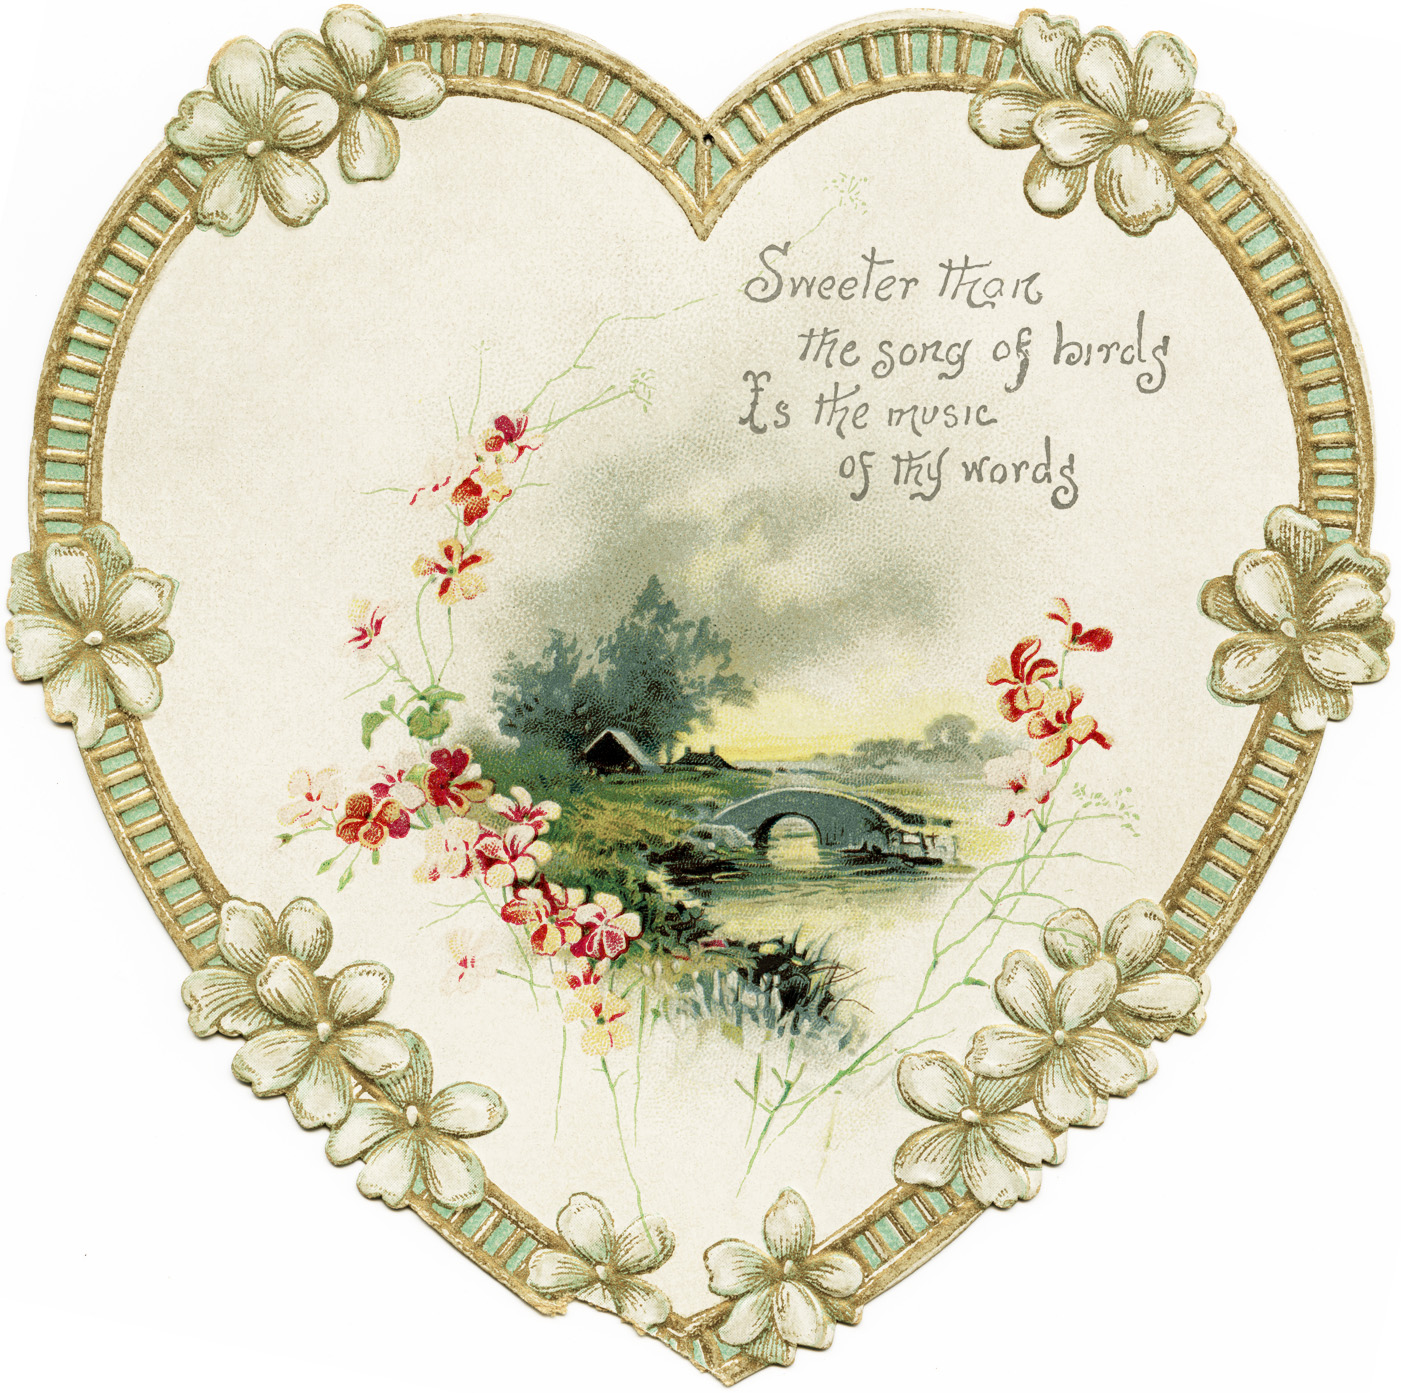 Card Heart Flowers Vintage Clipart Heart Old Fashioned Card